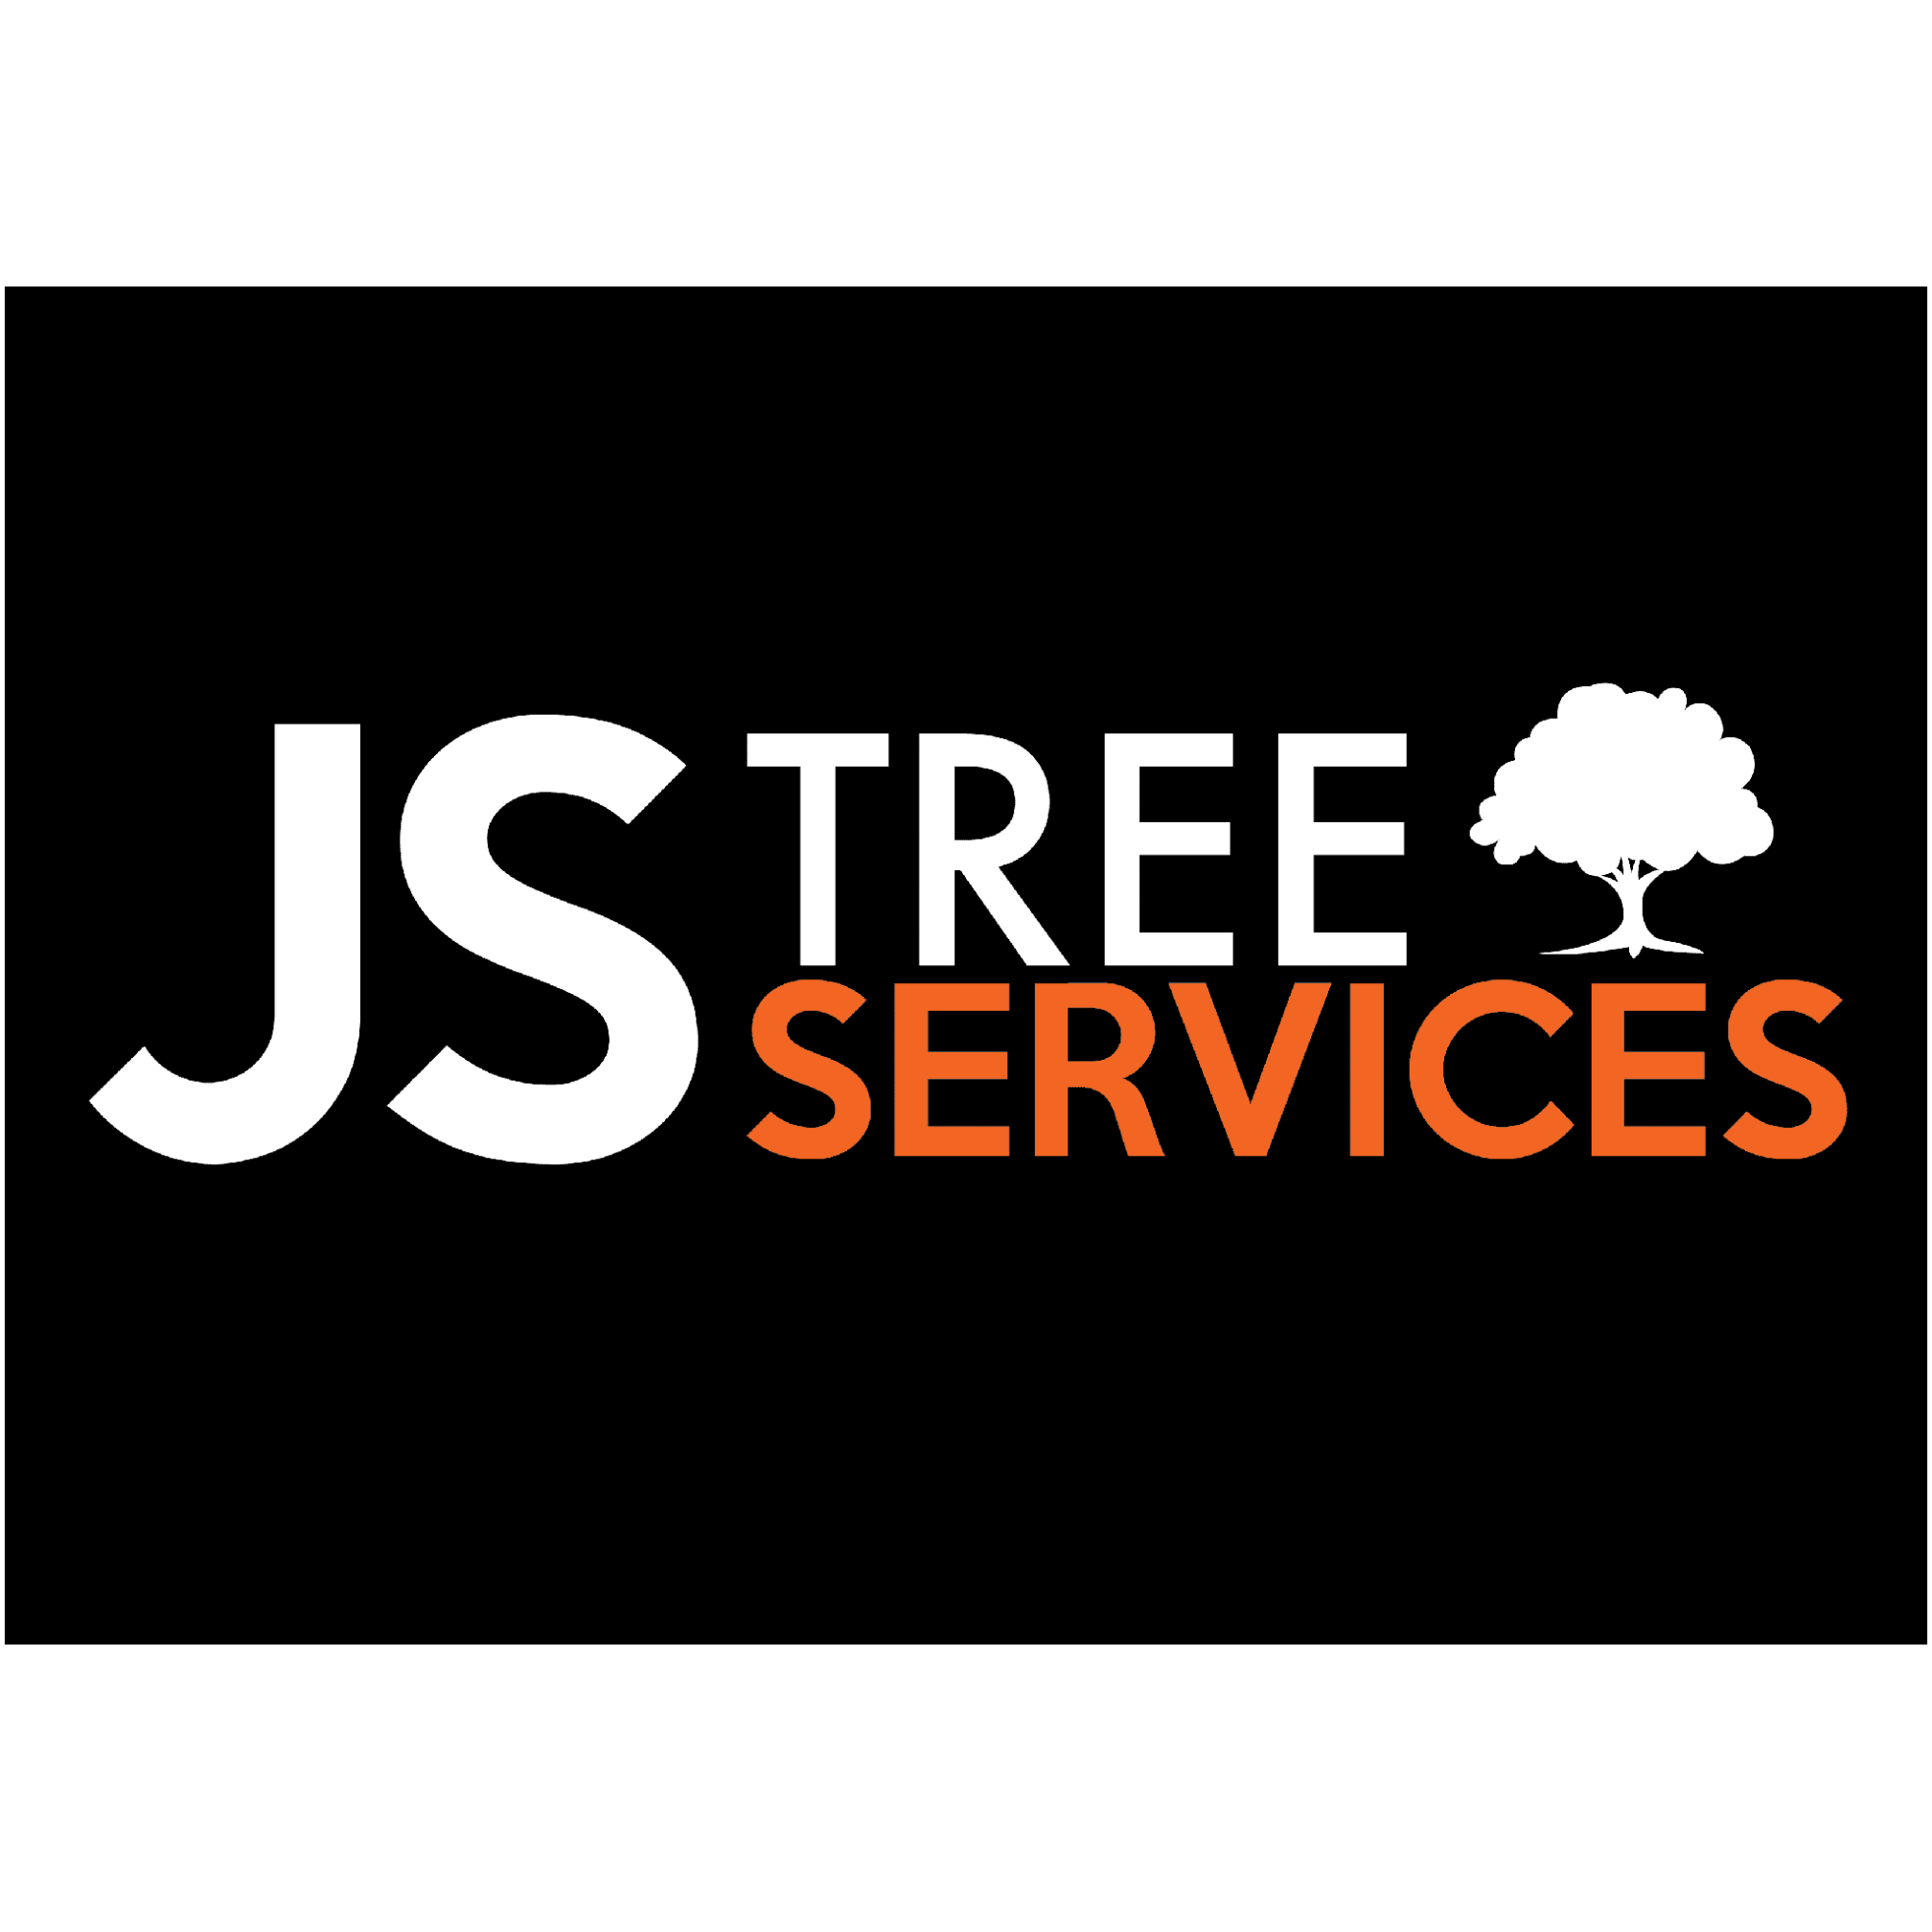 JS Tree Services - Inverurie, Aberdeenshire AB51 8UY - 07947 154183 | ShowMeLocal.com